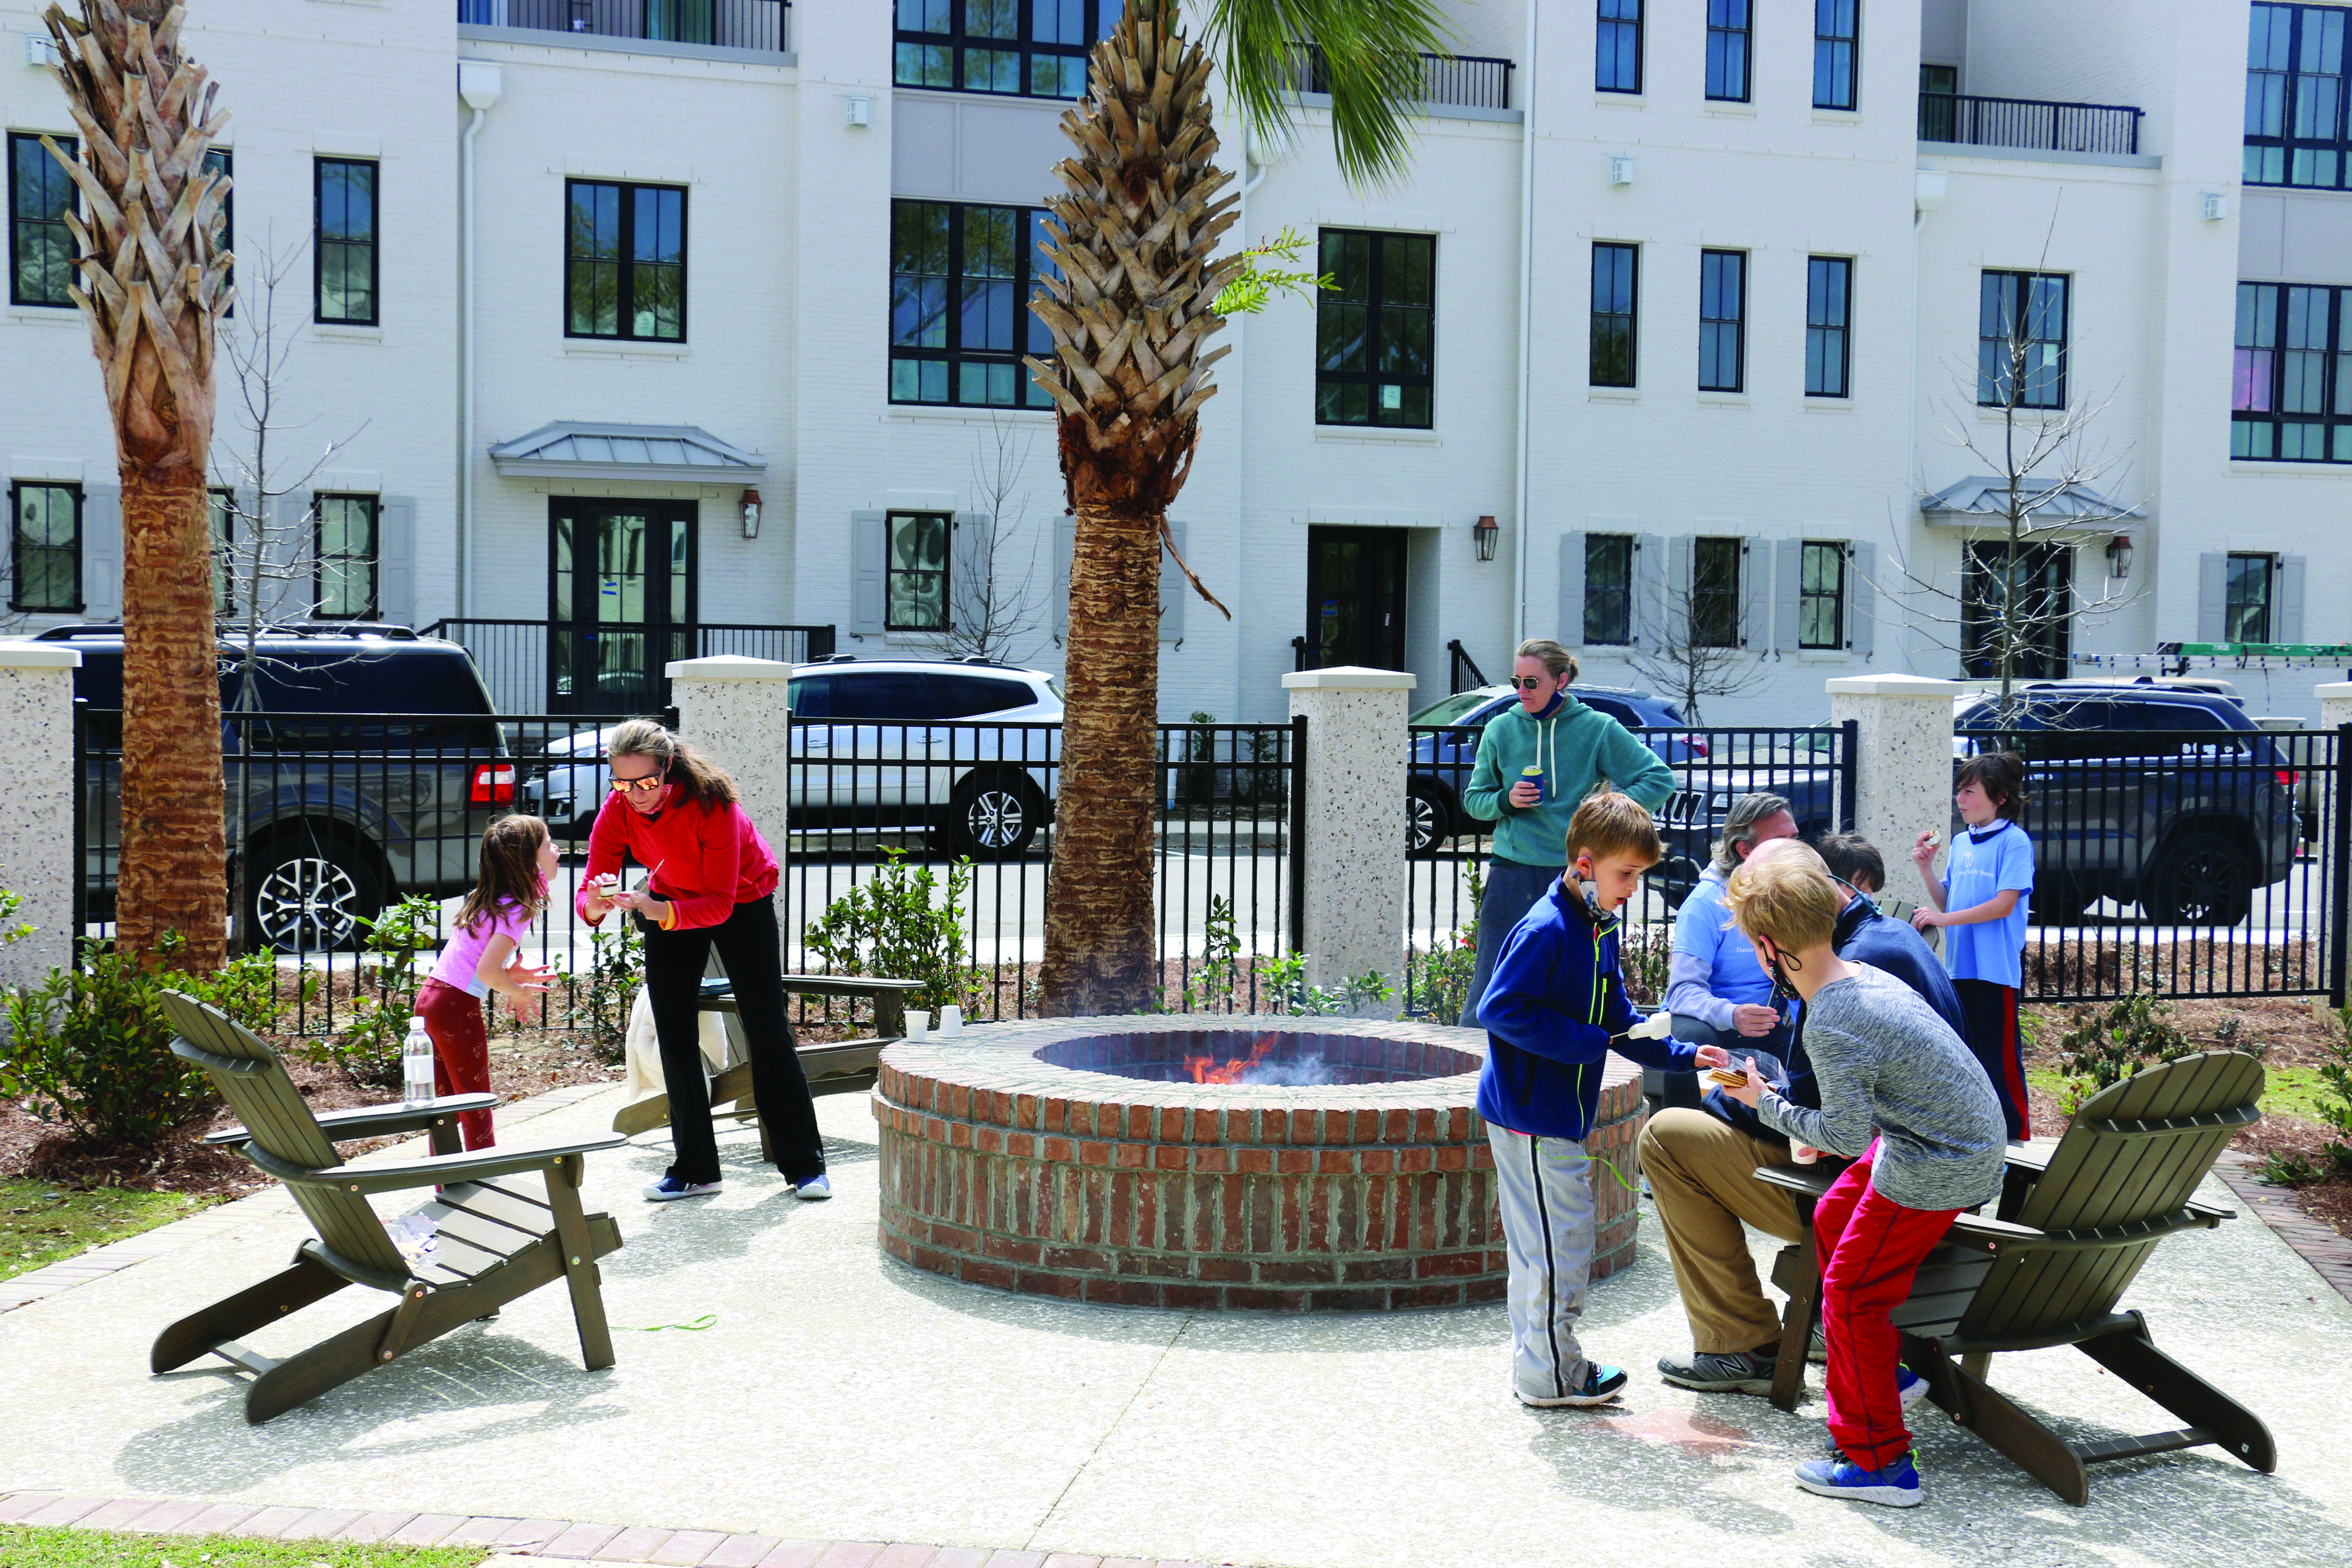 Children enjoyed roasting marshmallows and making s'mores at Waterfest. The fire pit is adjacent to the swimming pool complex in the community area for residents of the nearby condominiums and townhouses.